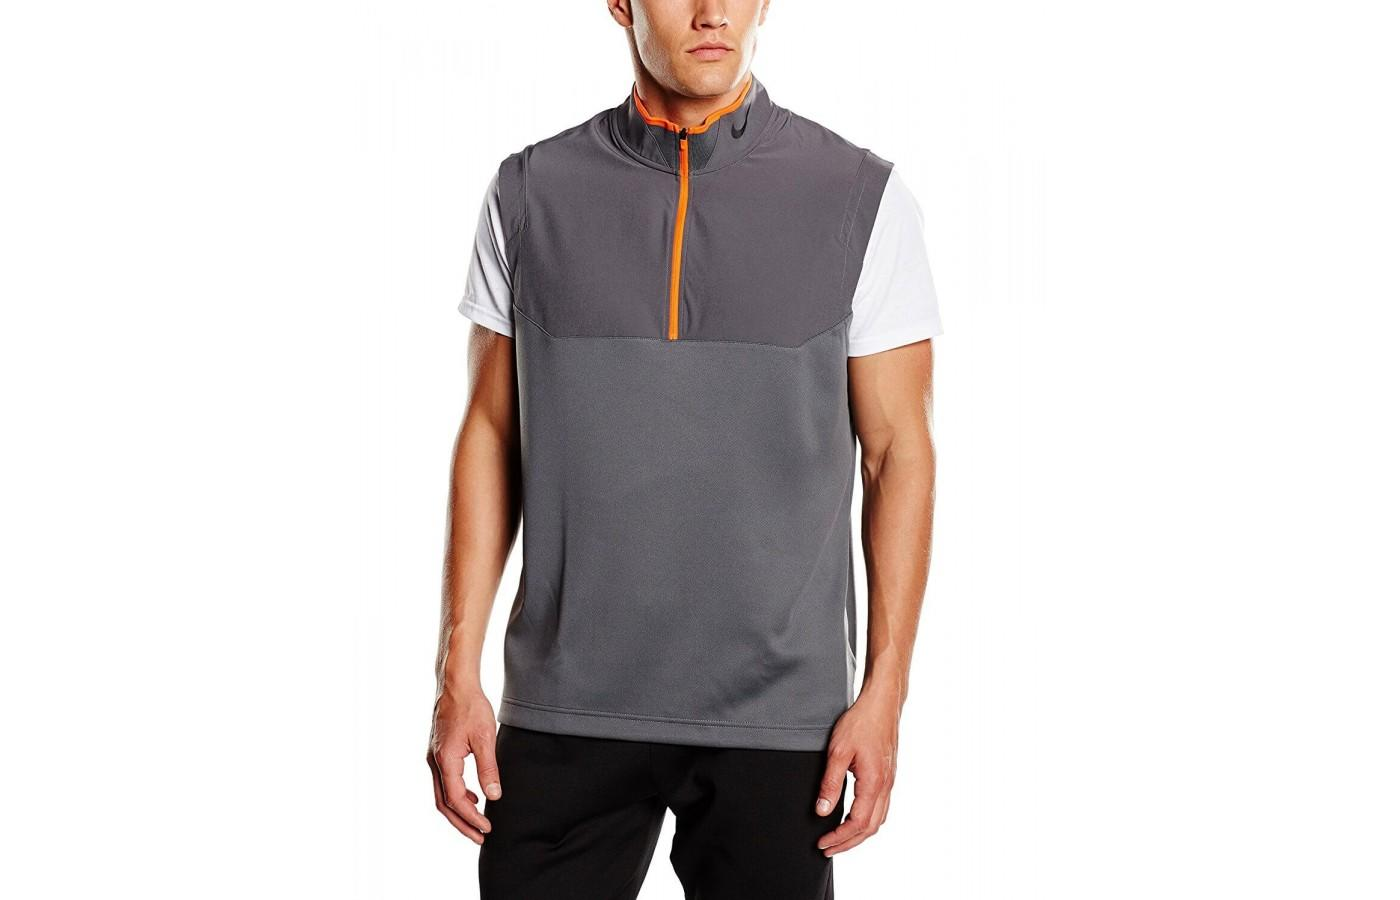 Nike Dri Fit 1/2 zippered vest is a stylish addition to your athletic clothing.